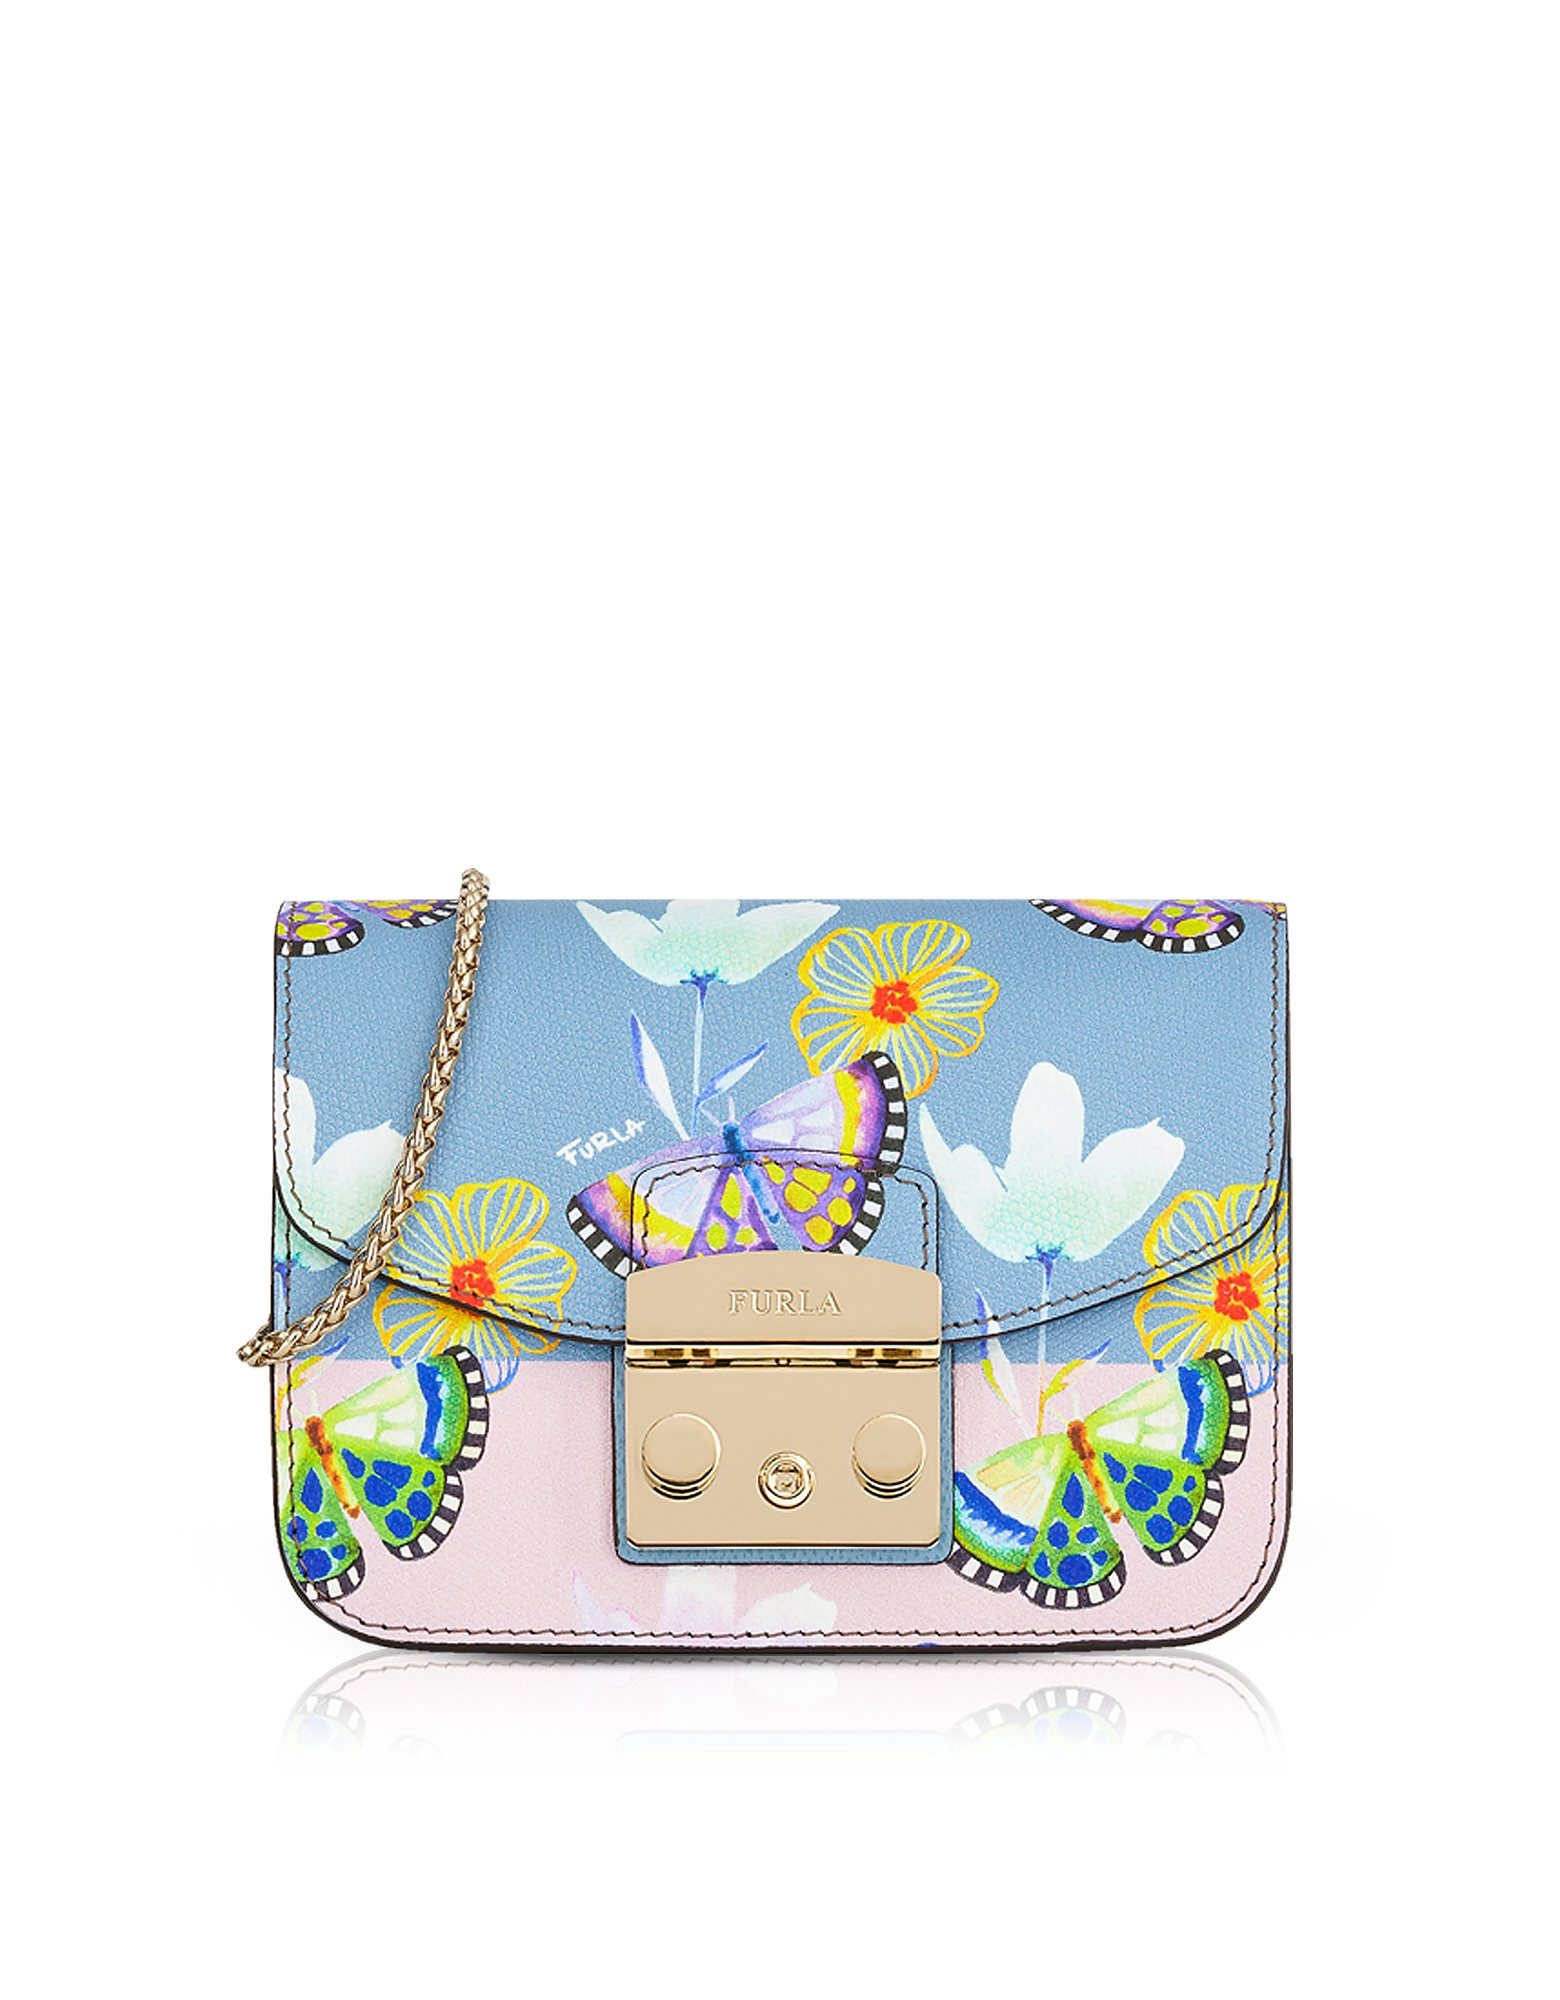 Furla Handbags, Butterfly Printed Toni Veronica Leather Metropolis Mini Crossbody Bag